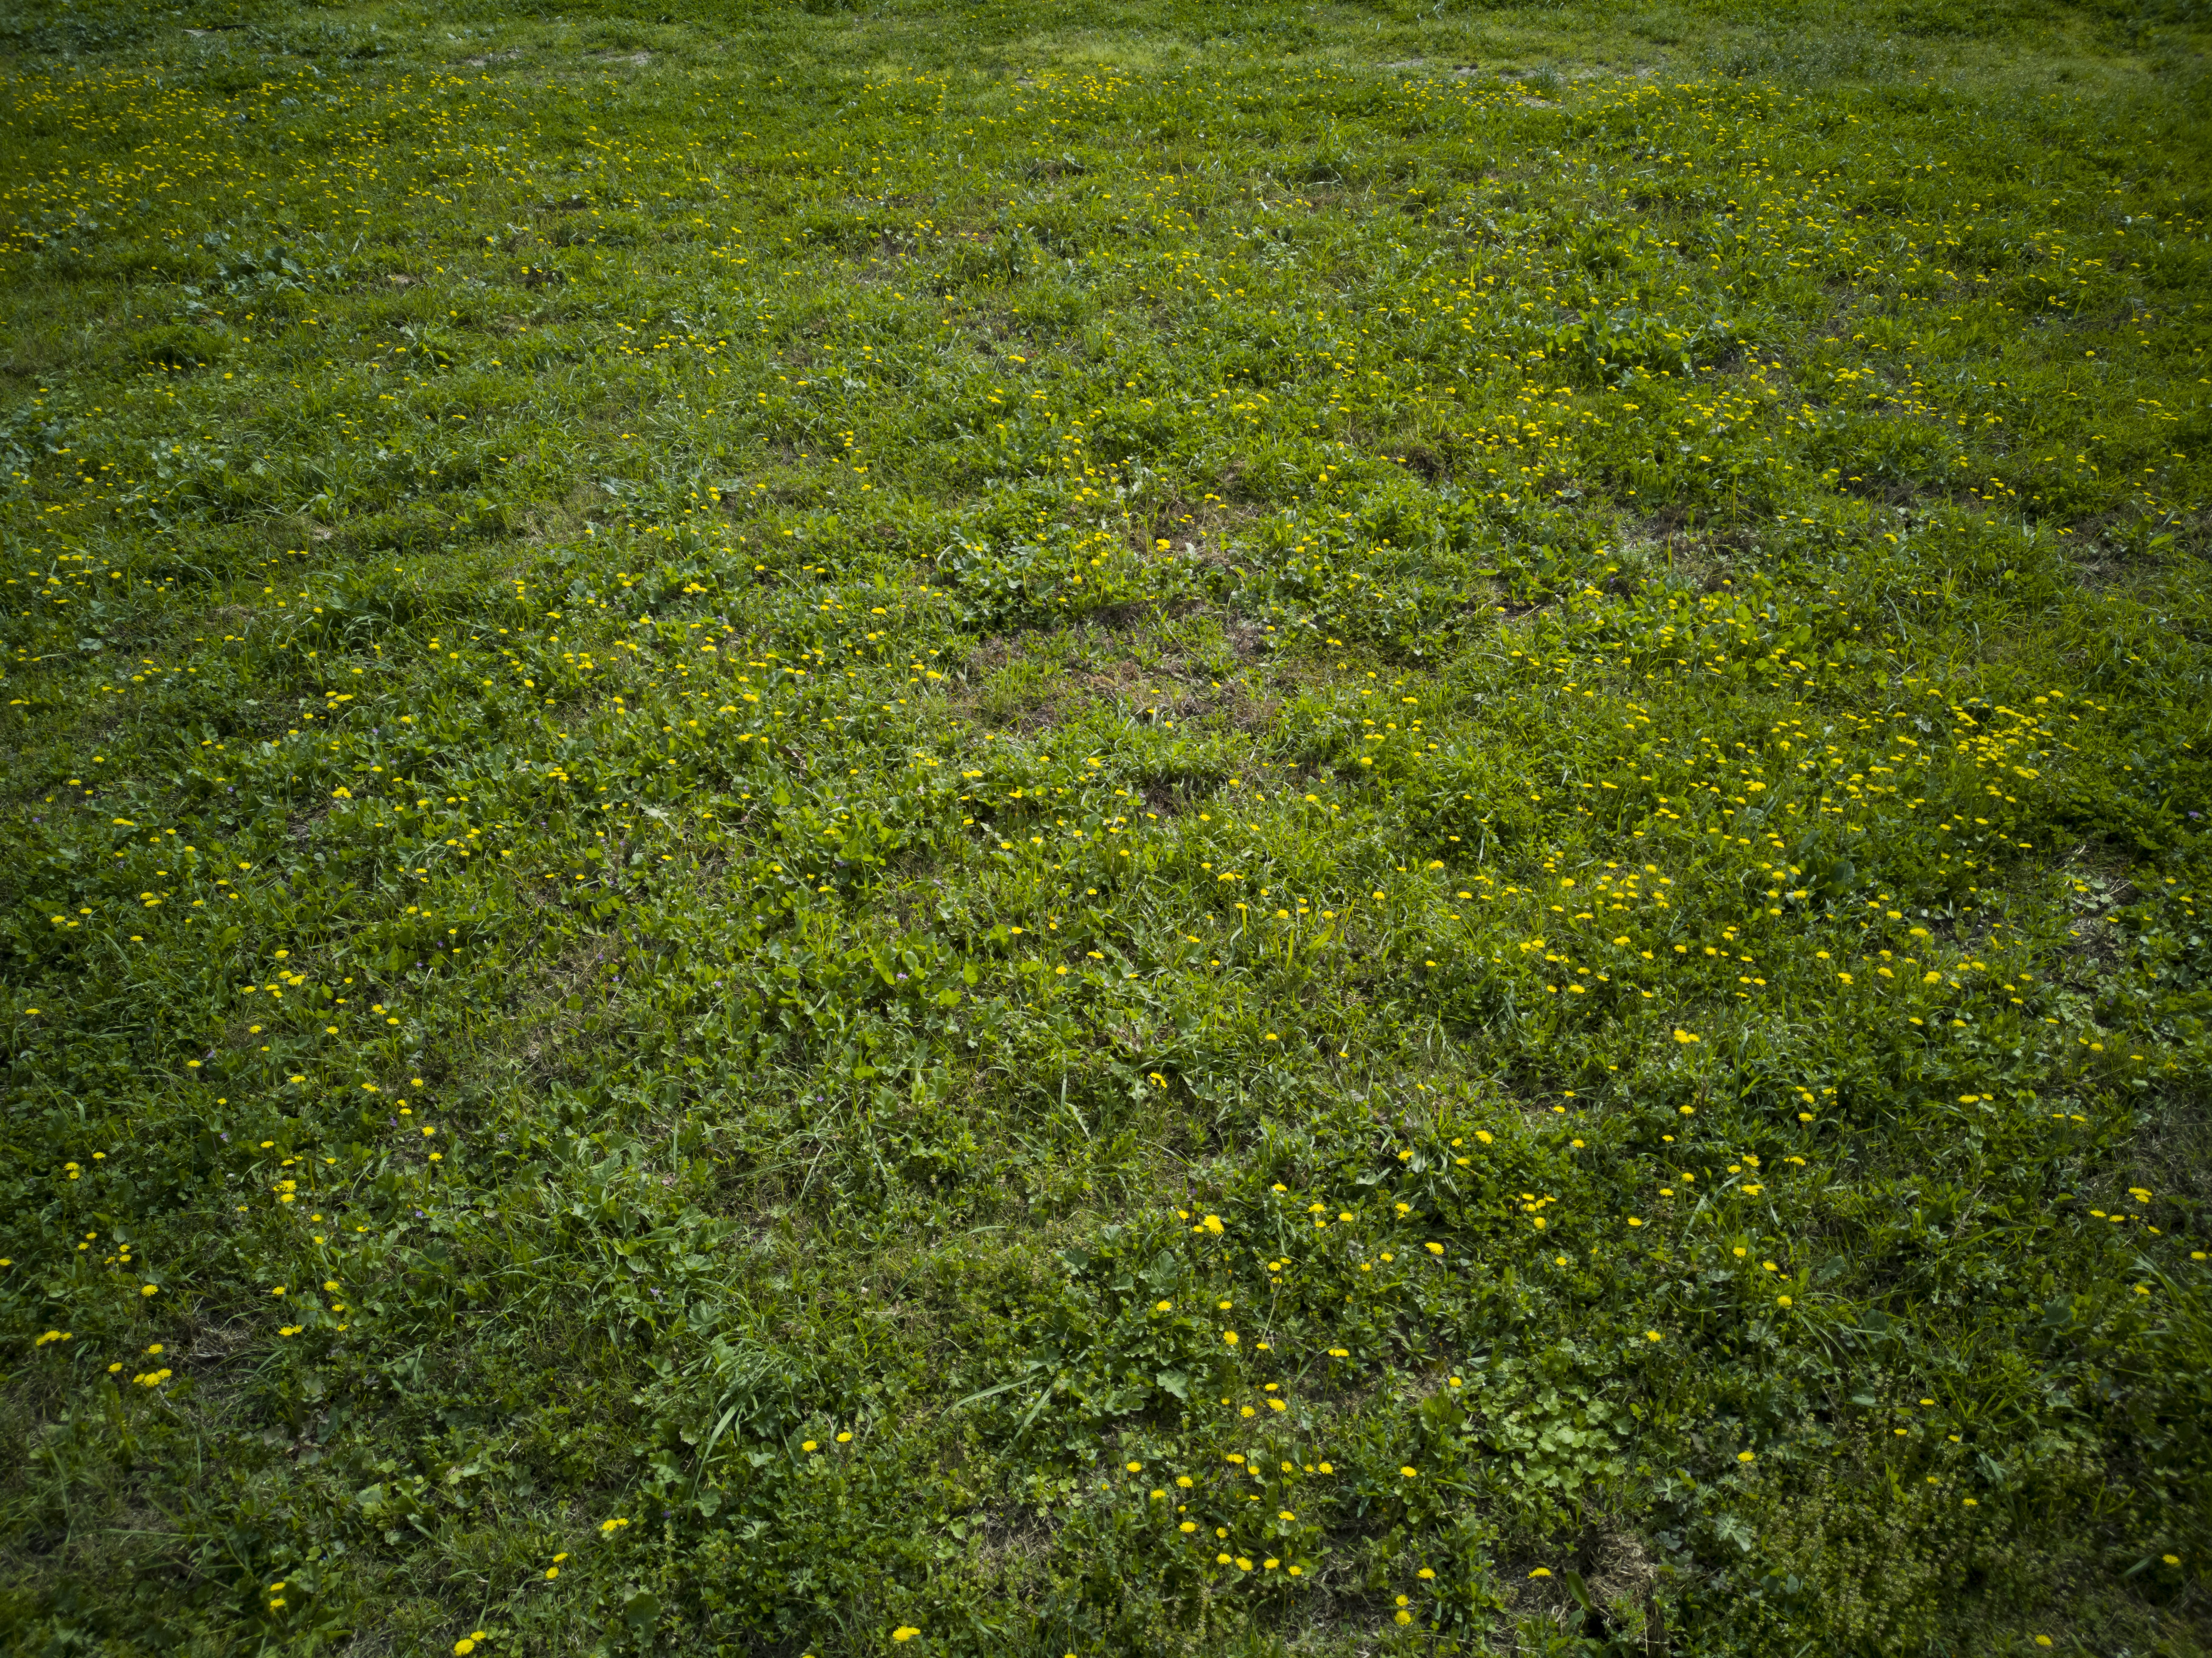 Free stock photo of background, close up, environment, grass